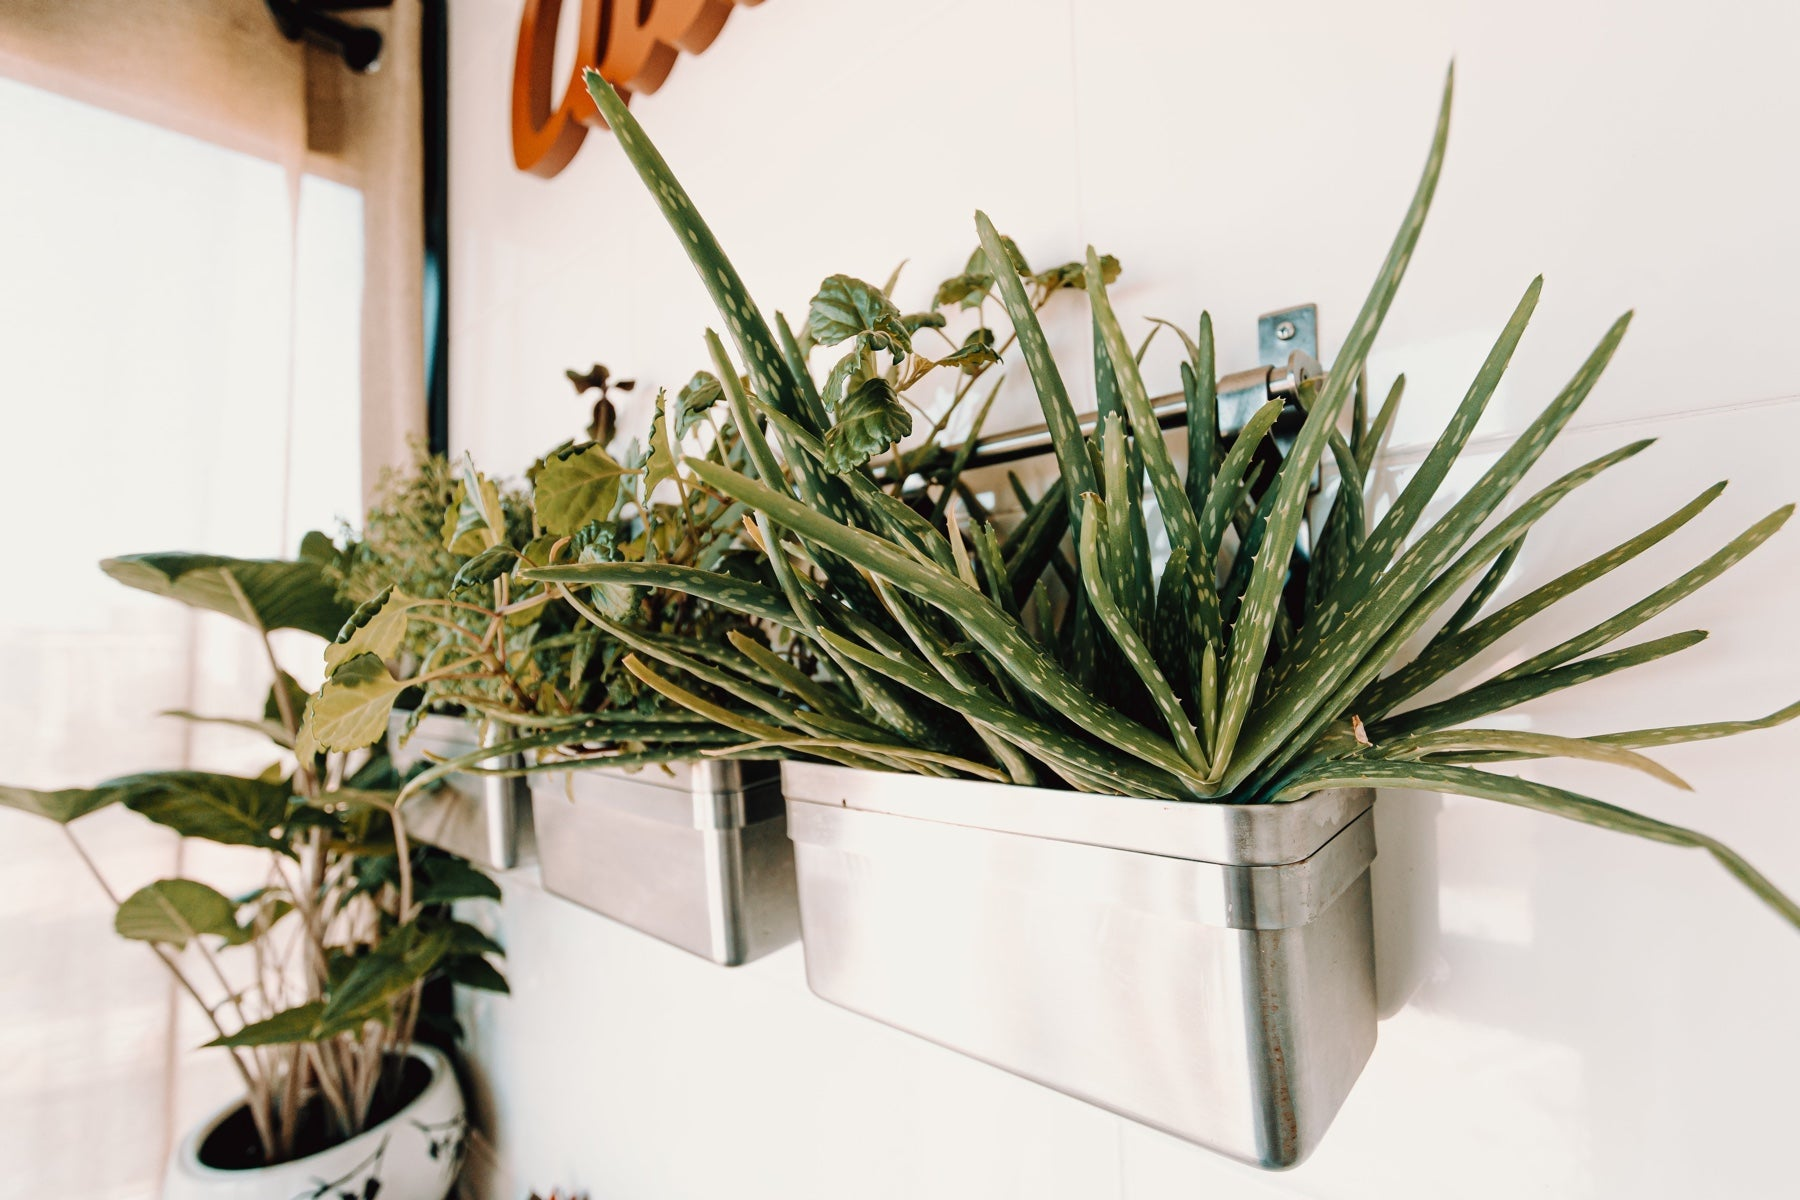 Plants sit in a hanging planter on a wall